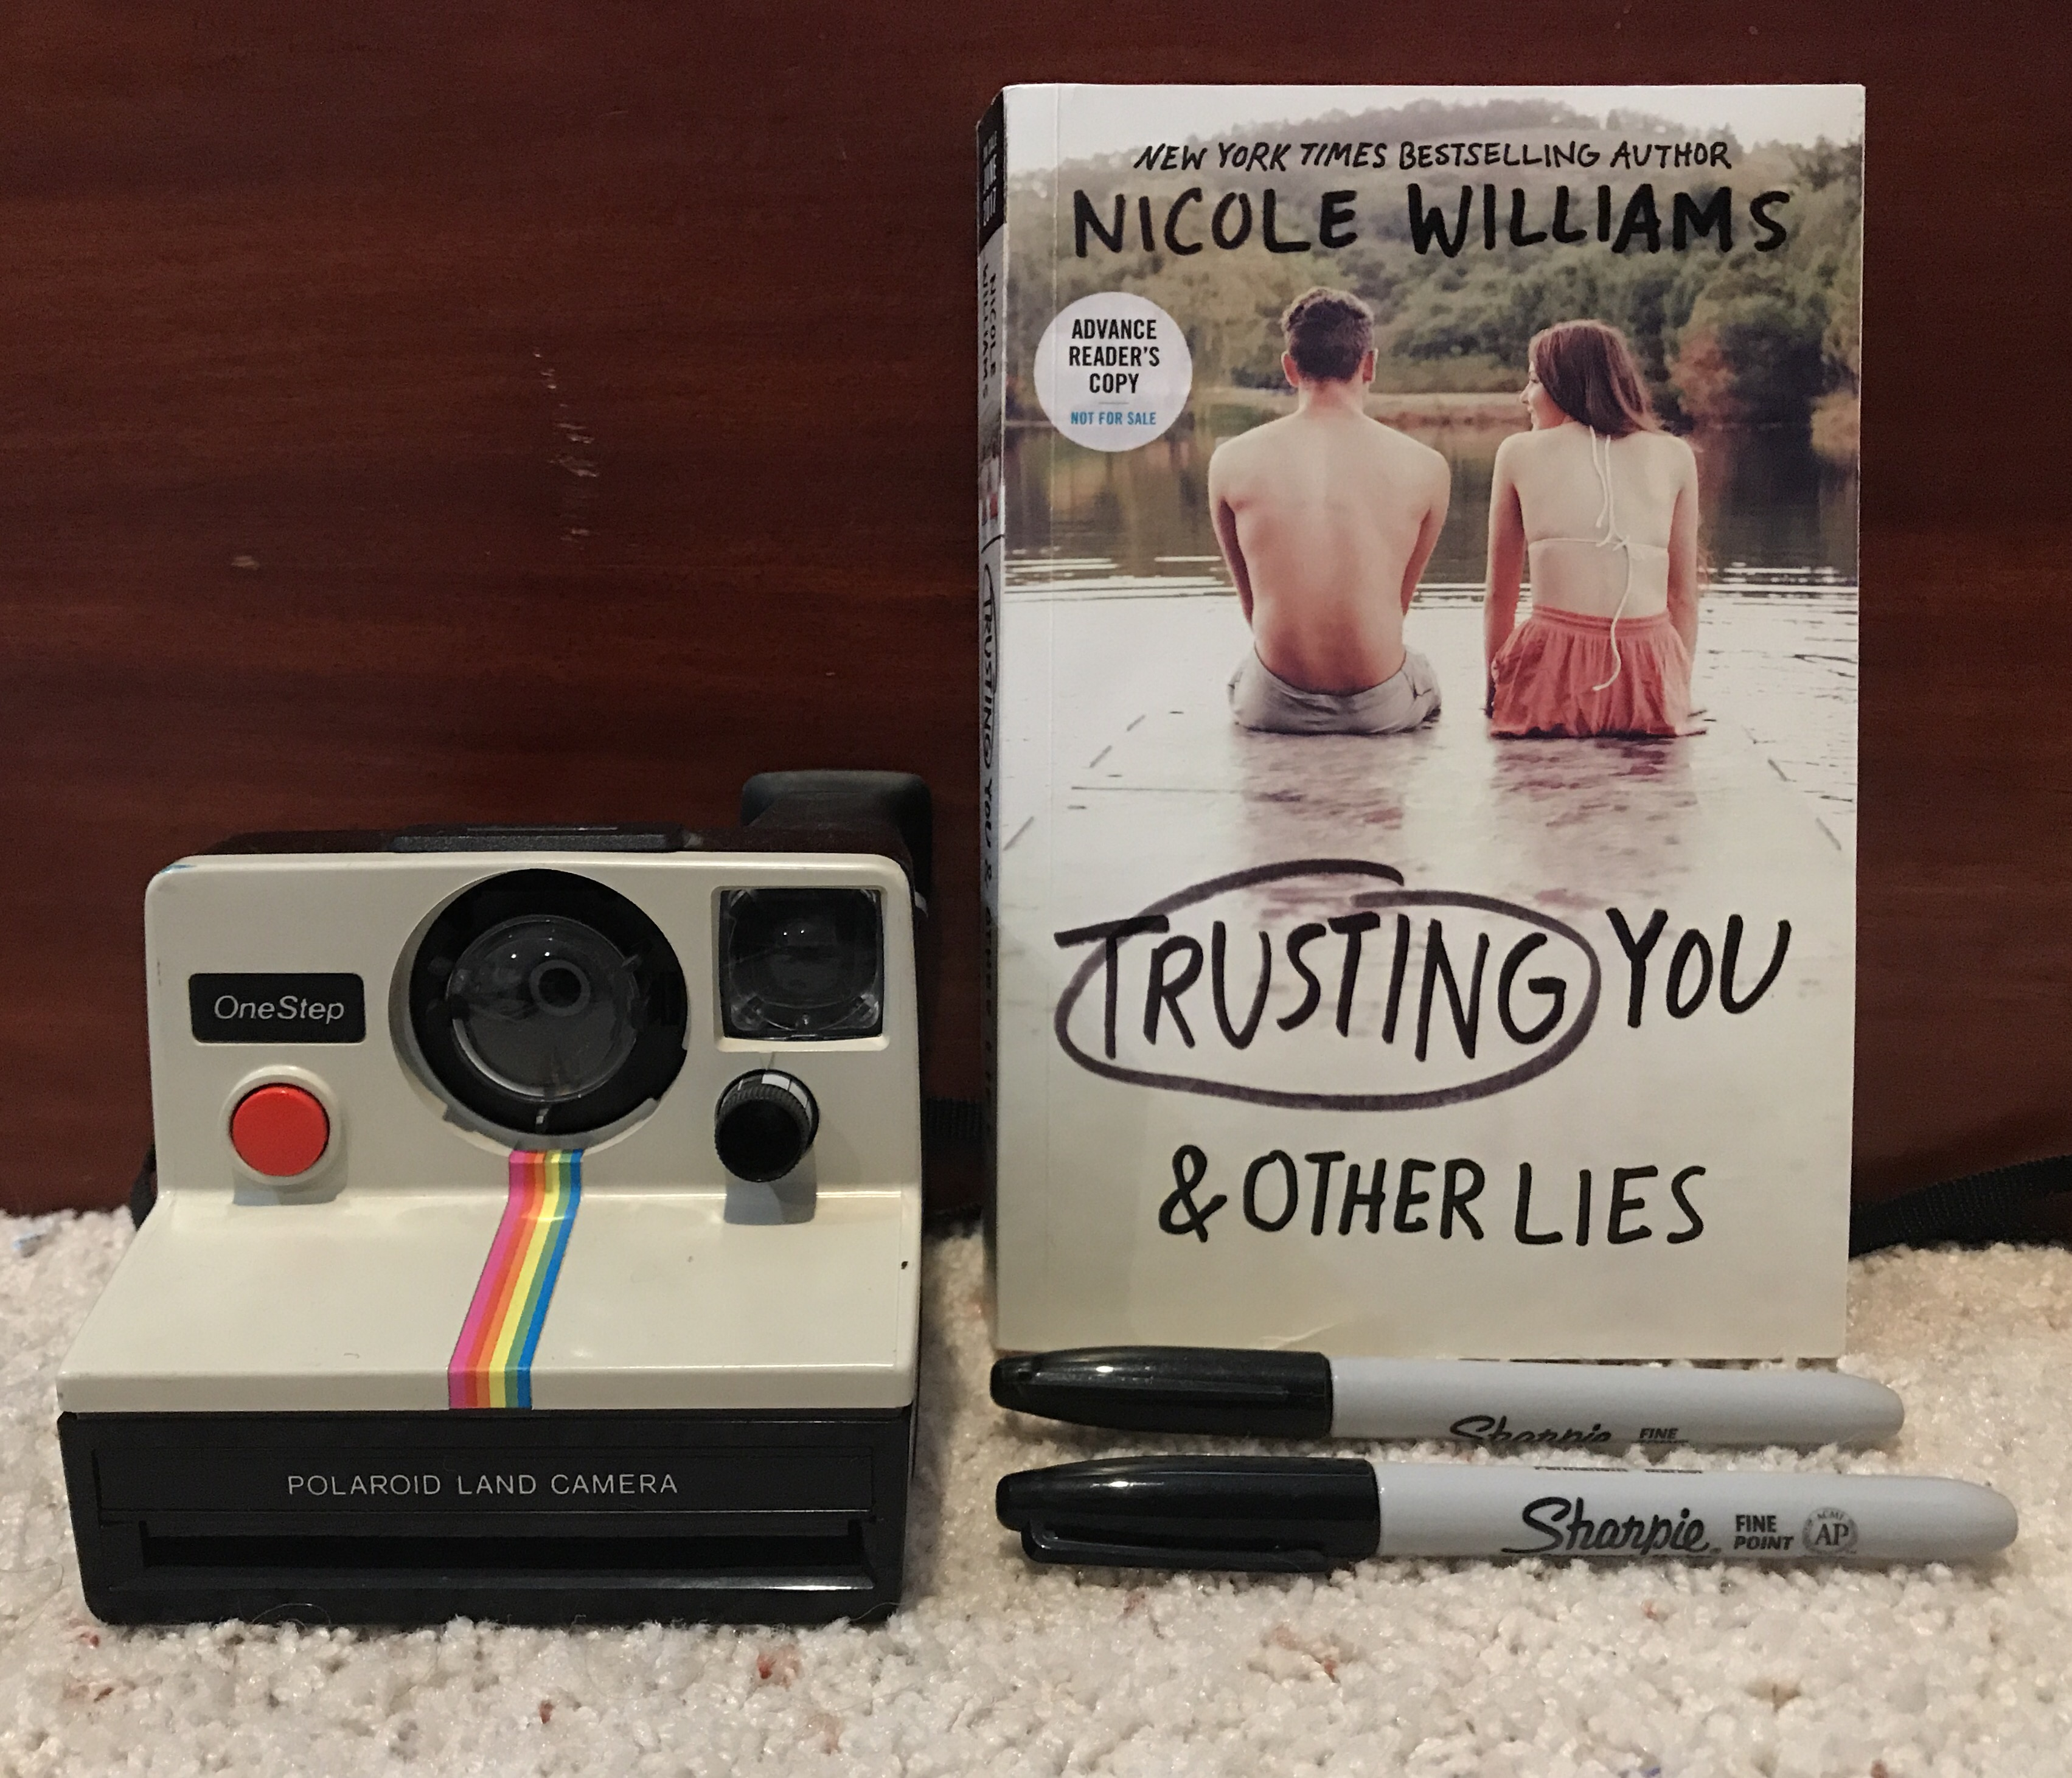 ARC REVIEW] 'Trusting You & Other Lies' By: Nicole Williams | buried